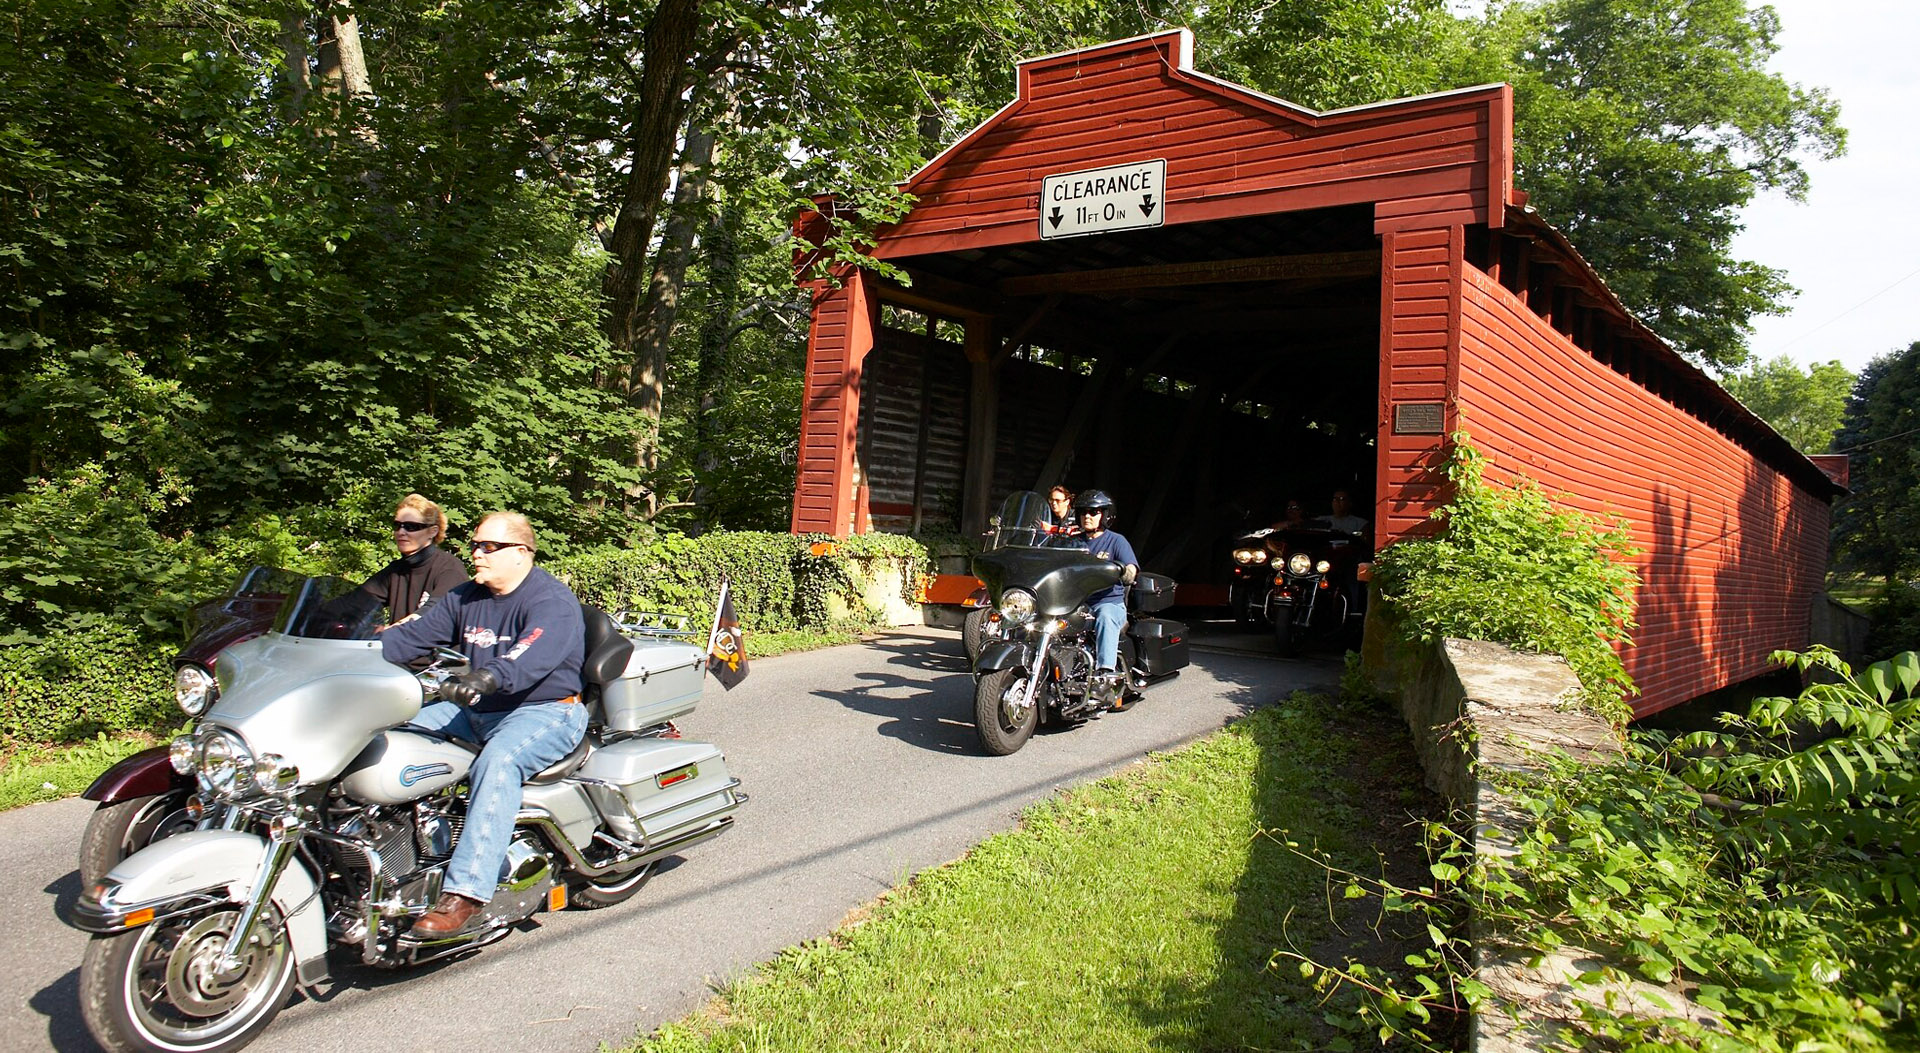 Motorcyclists departing from a Red Covered Bridge in Pennsylvanias Americana Region